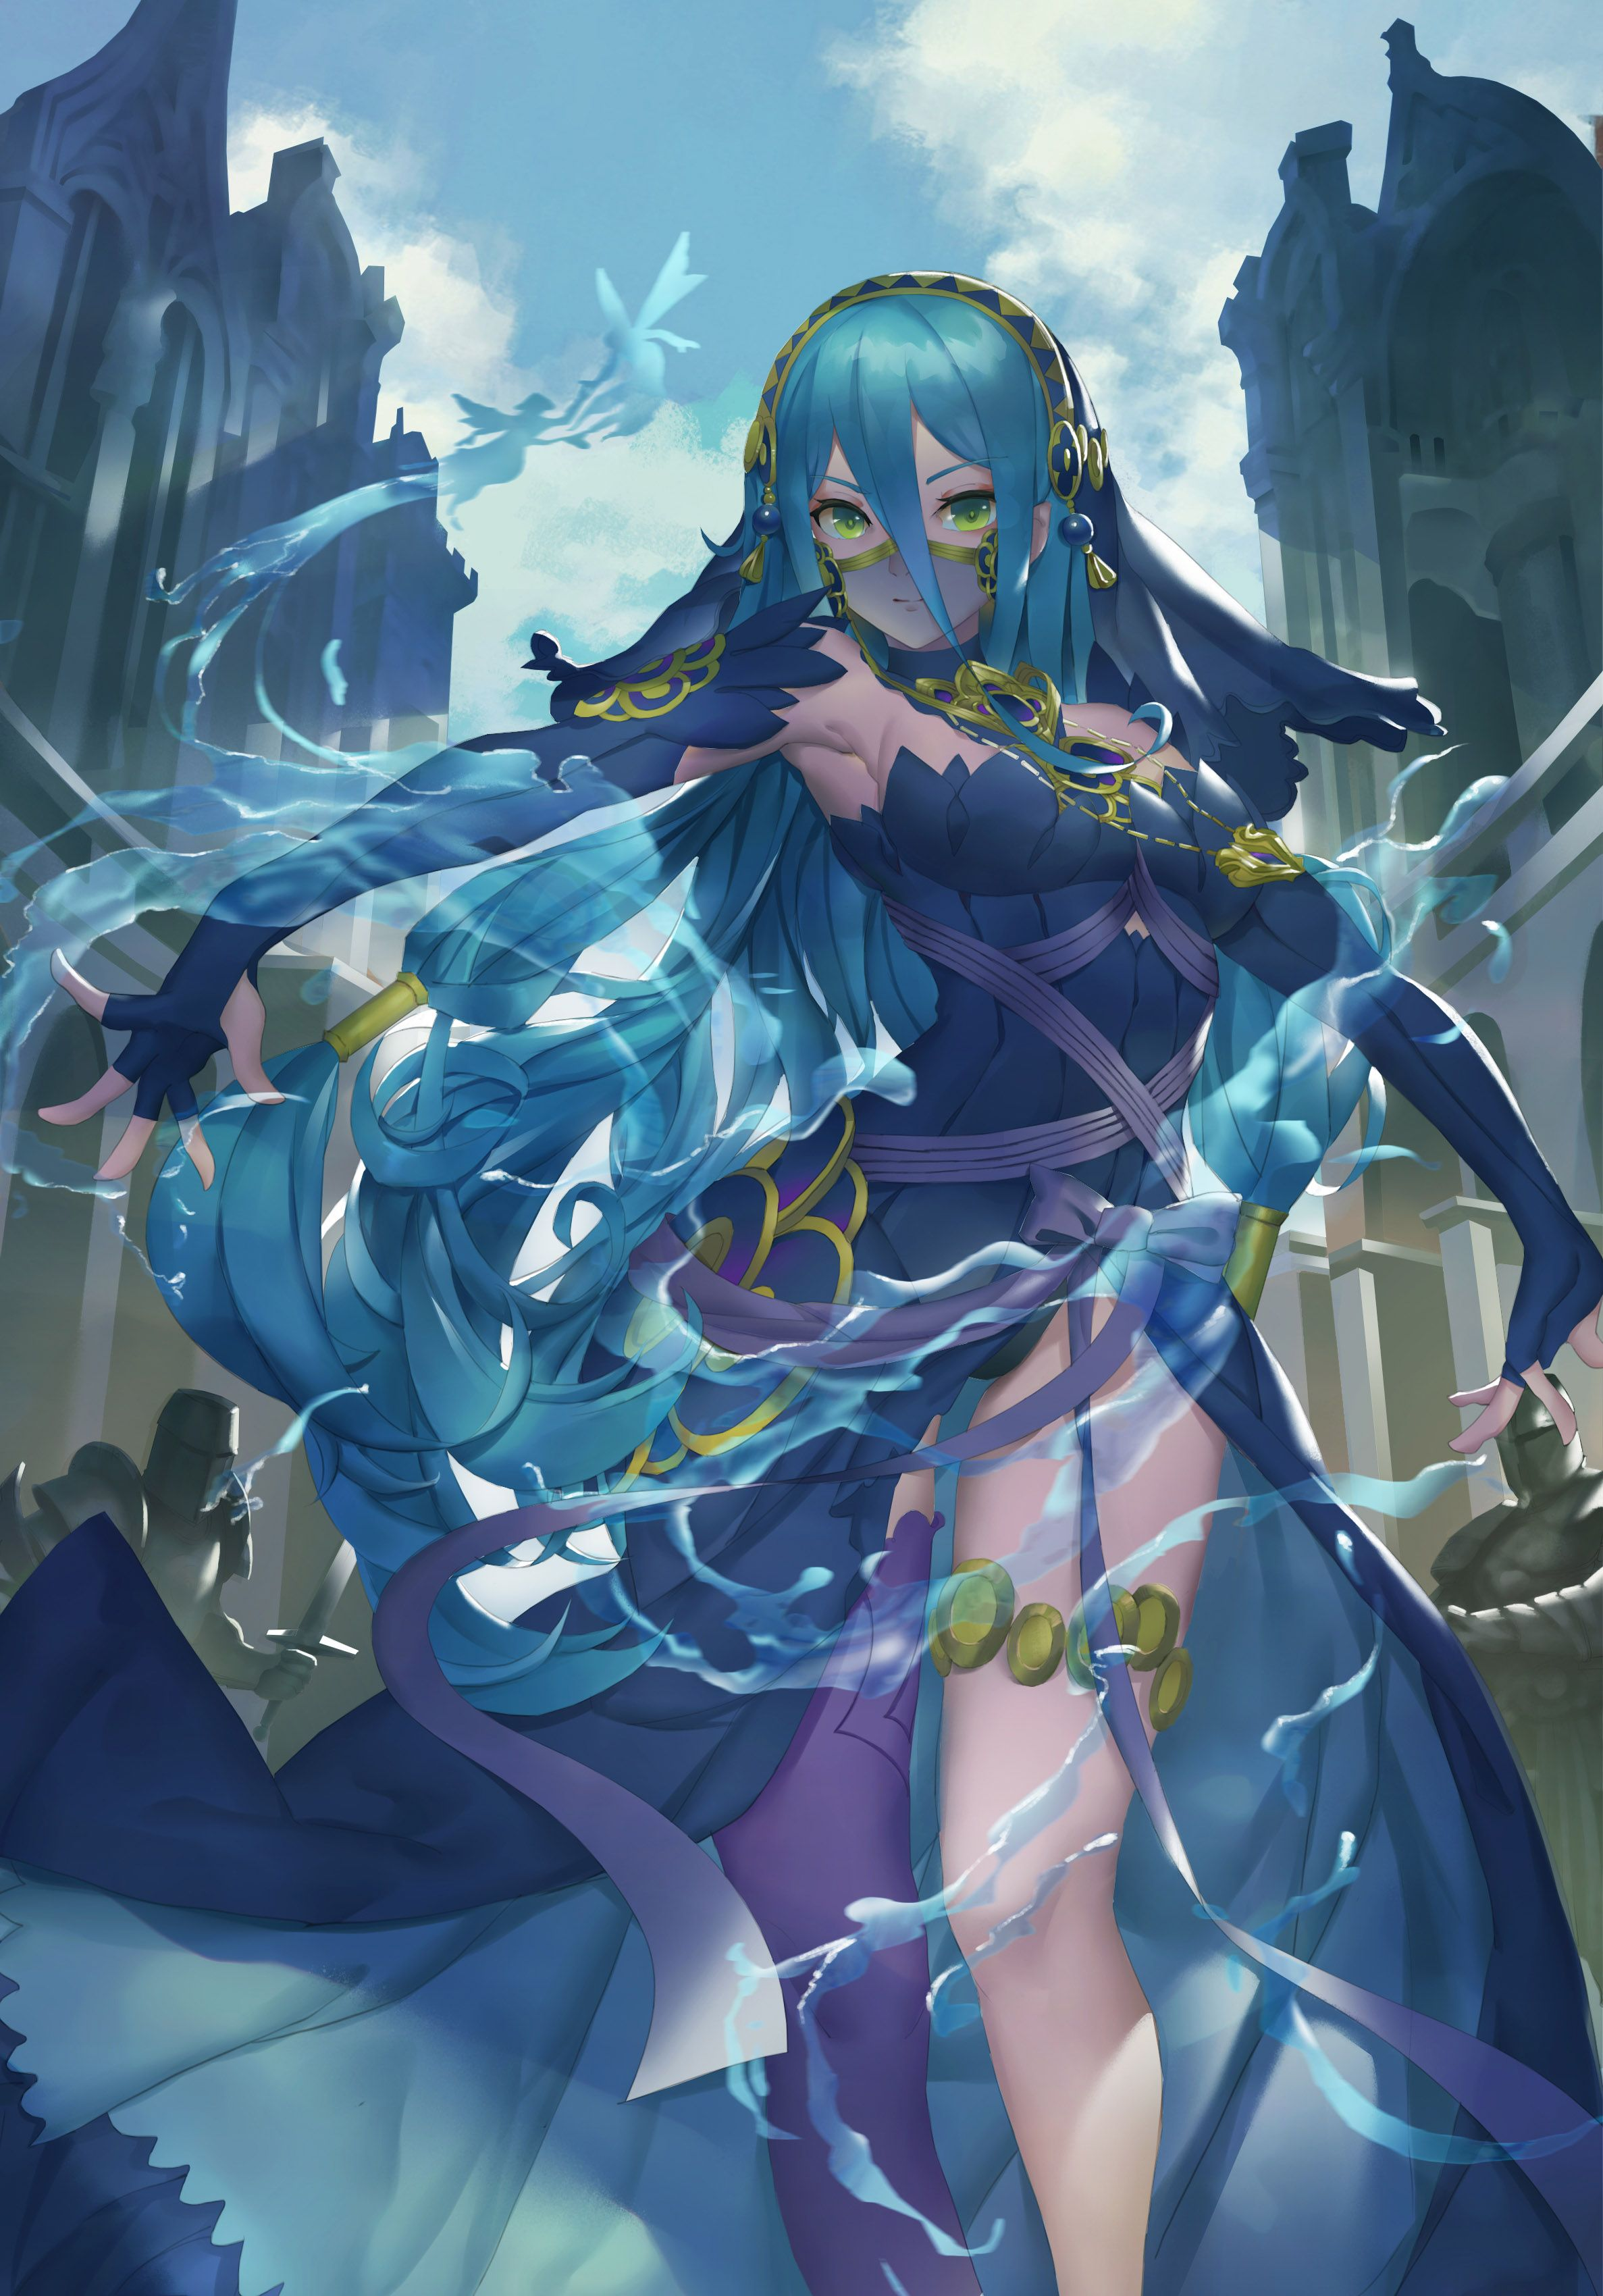 Pin By Asuka On Fire Emblem Fates Fire Emblem Azura Fire Emblem